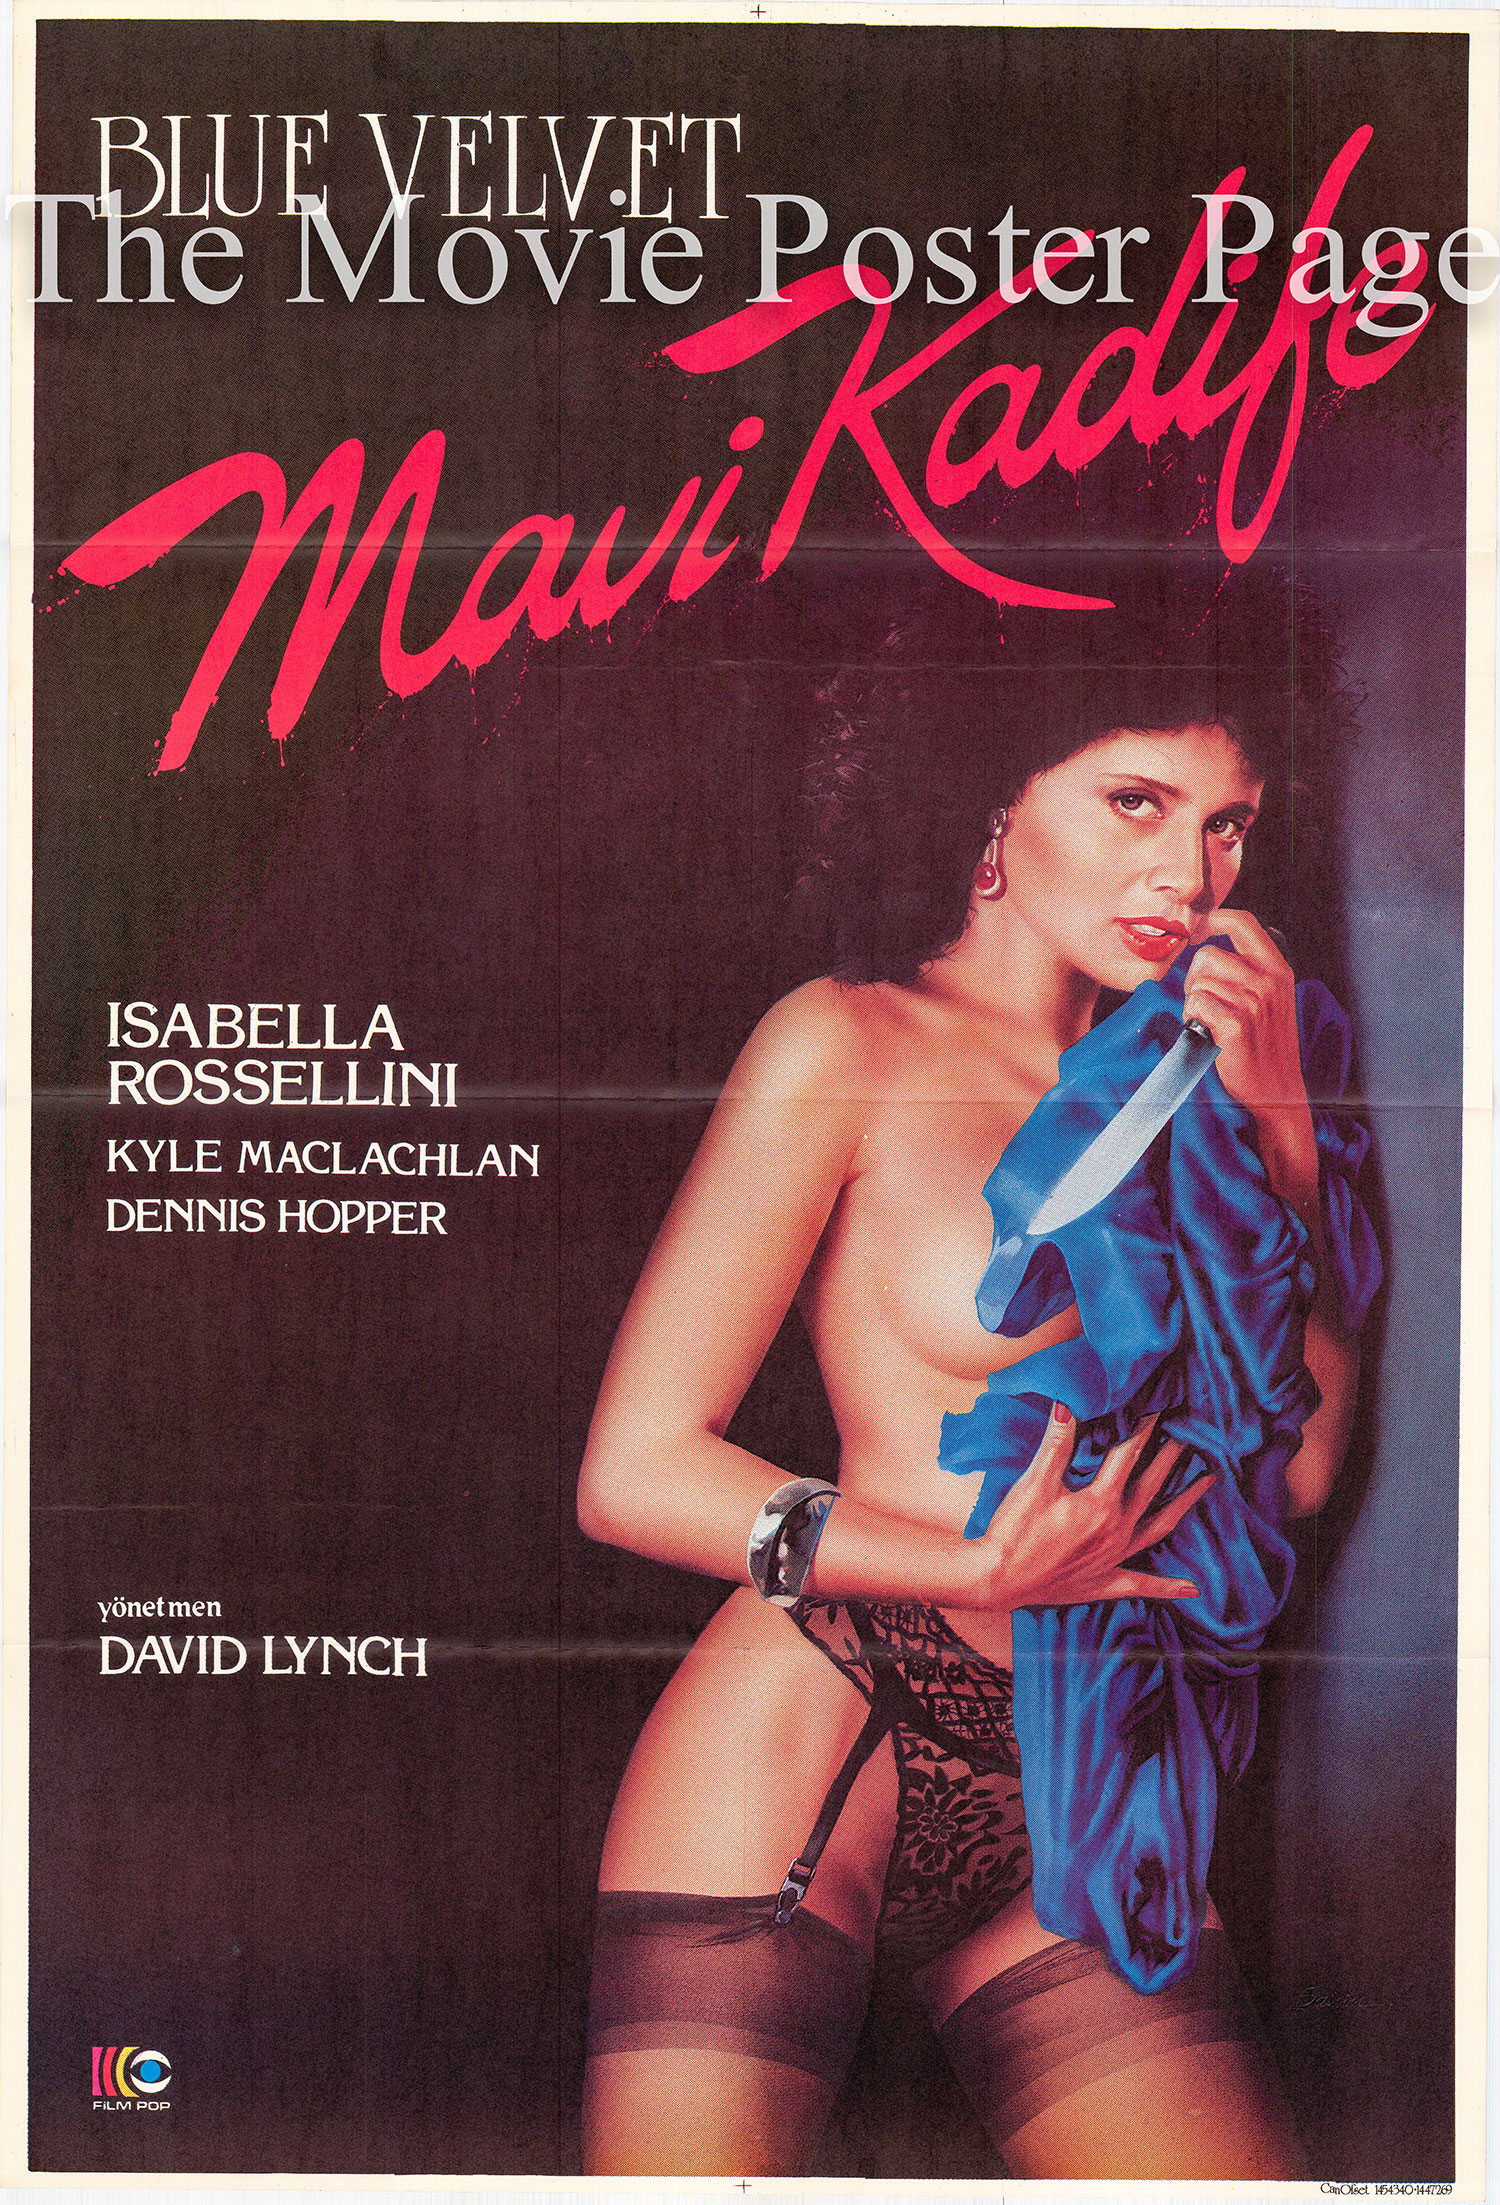 Pictured is a Turkish promotional poster for the 1986 David Lynch film Blue Velvet starring Isabella Rossellini.